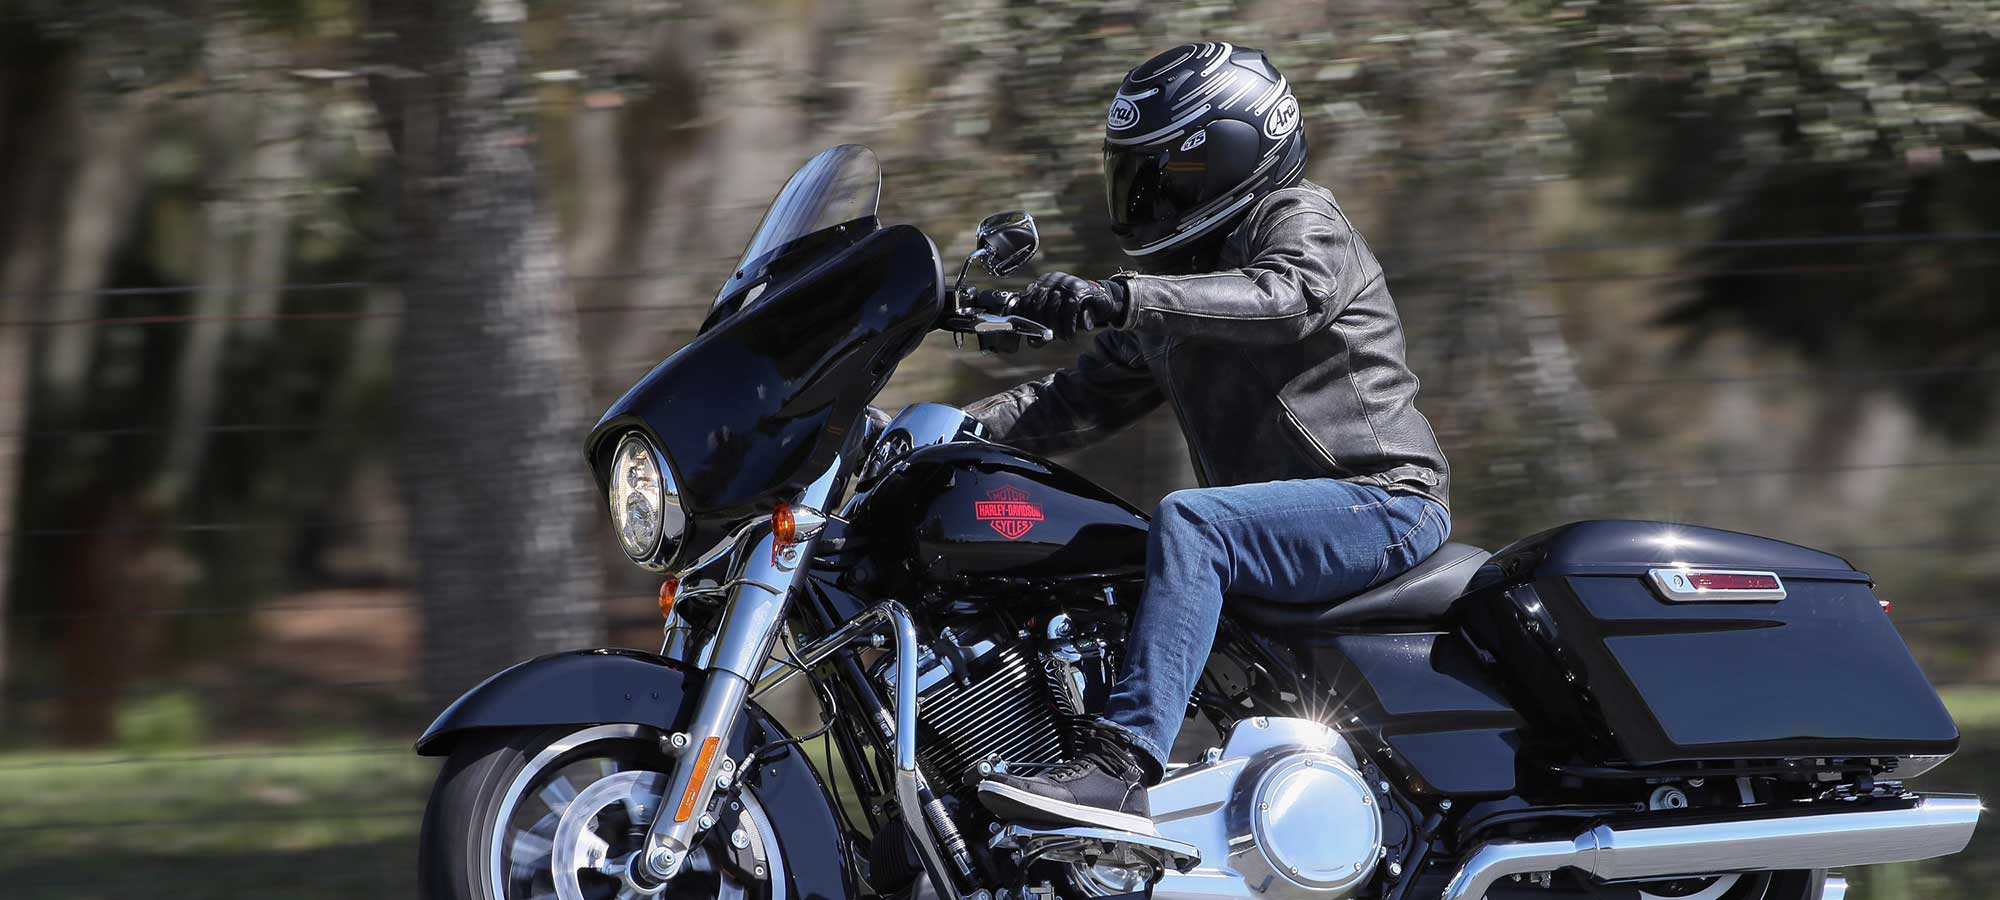 Biker on the 2019 Harley-Davidson Electra Glide Standard.